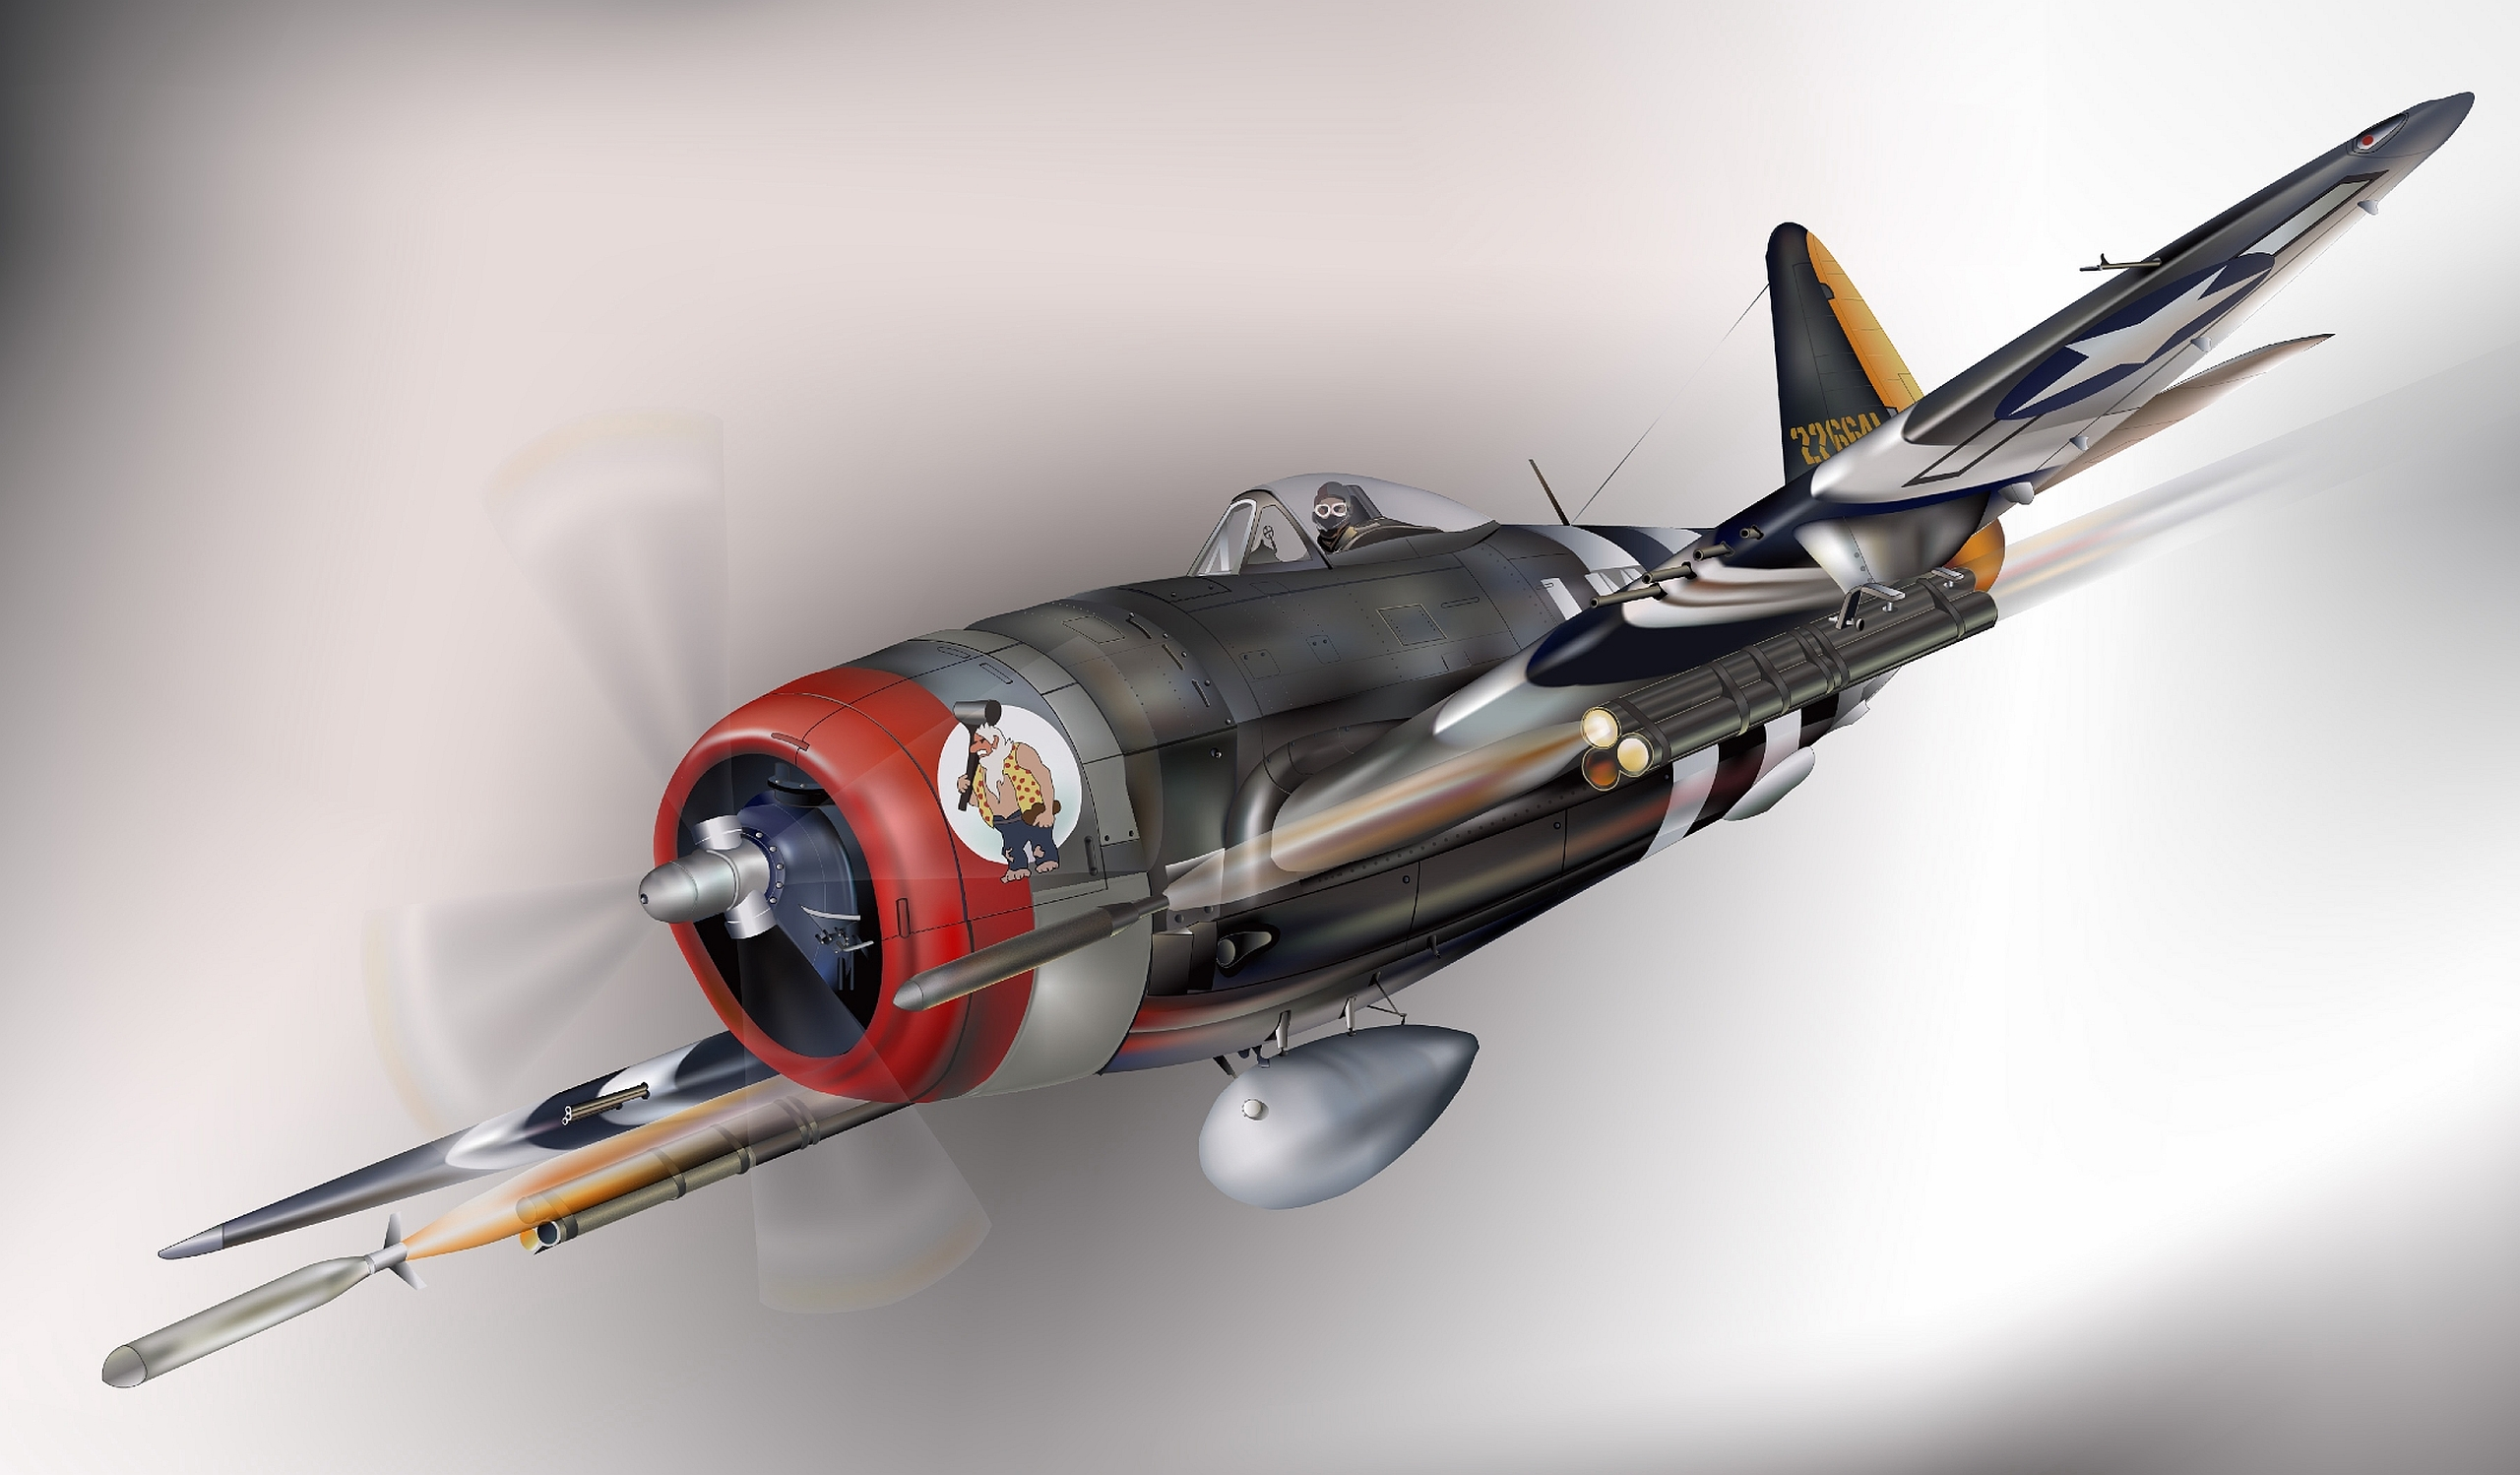 8 Republic P 47 Thunderbolt HD Wallpapers Background Images 2560x1498